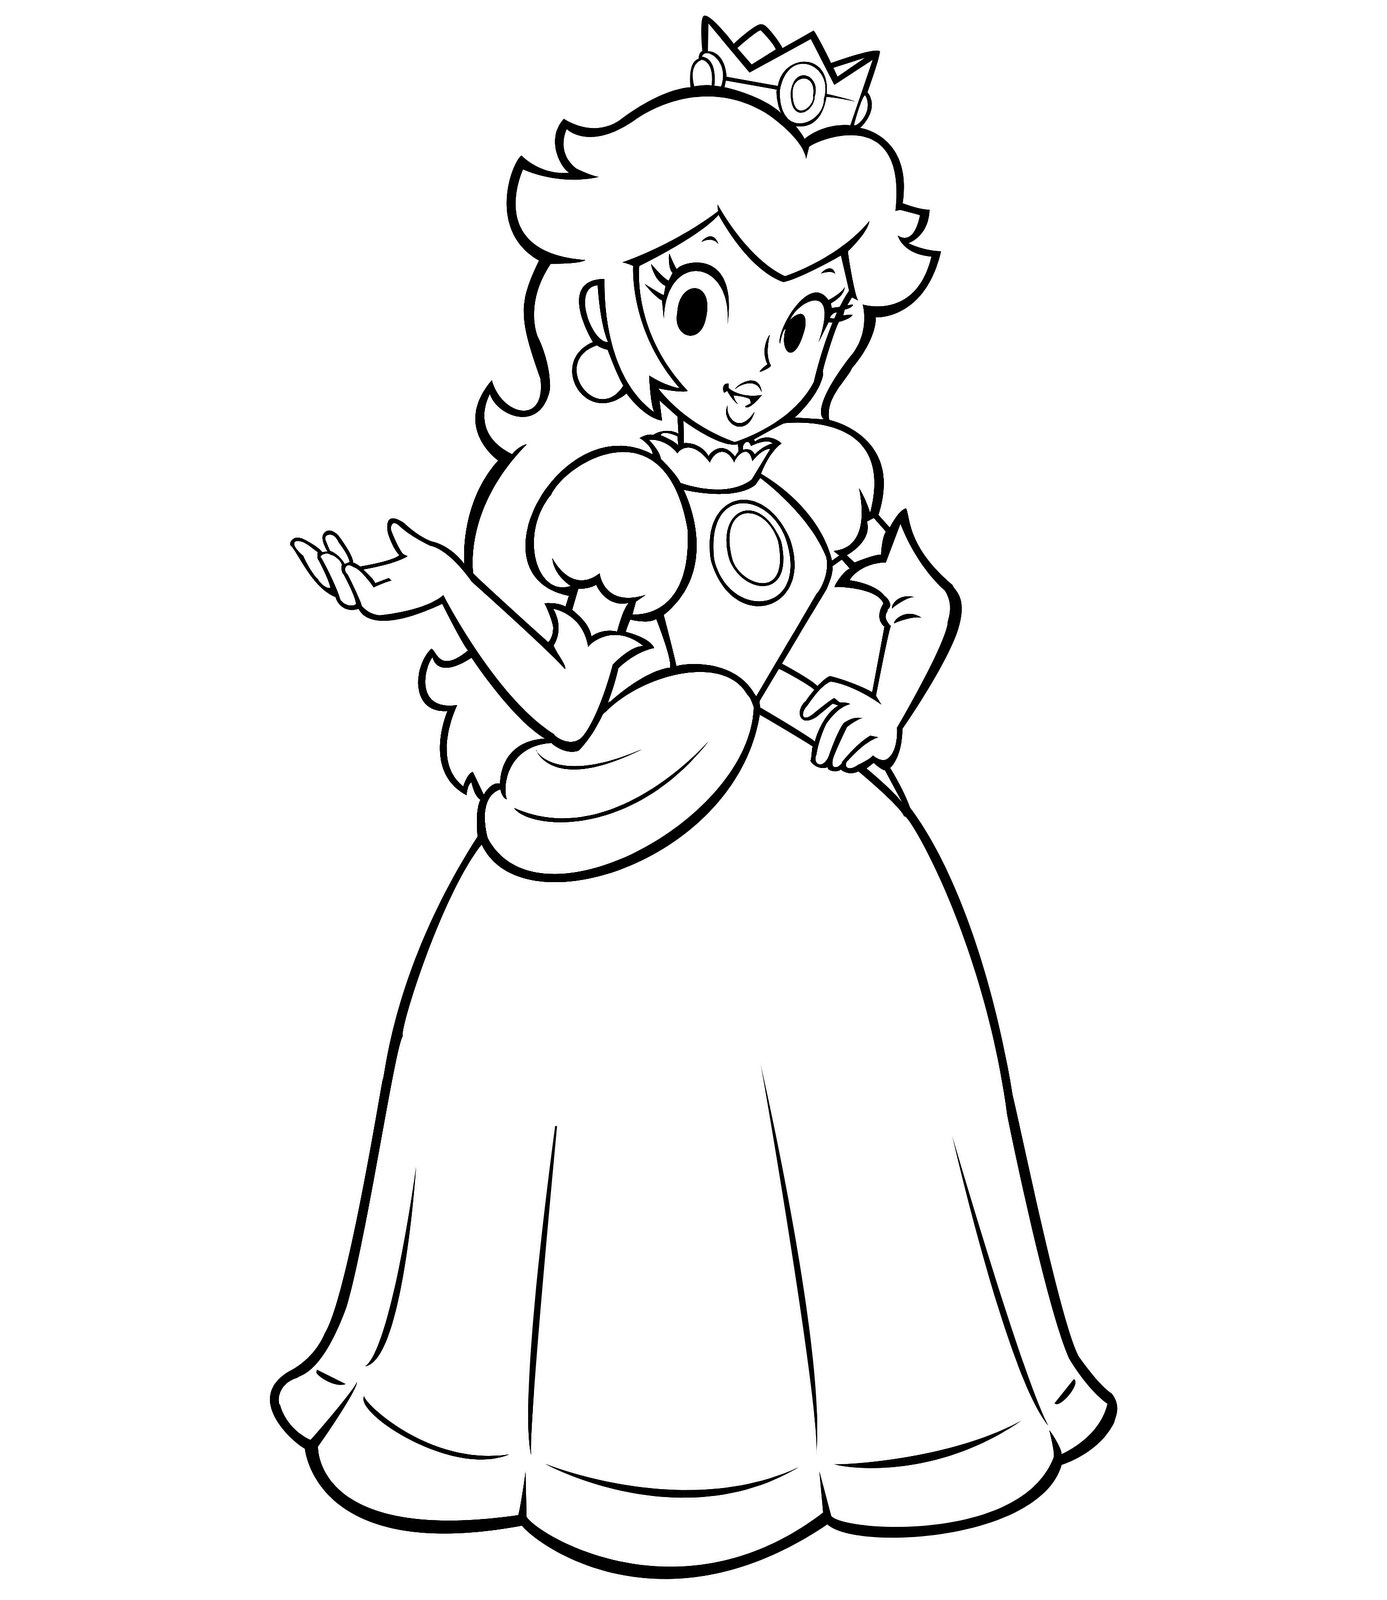 Coloring Book Pages Princess : Free princess peach coloring pages for kids